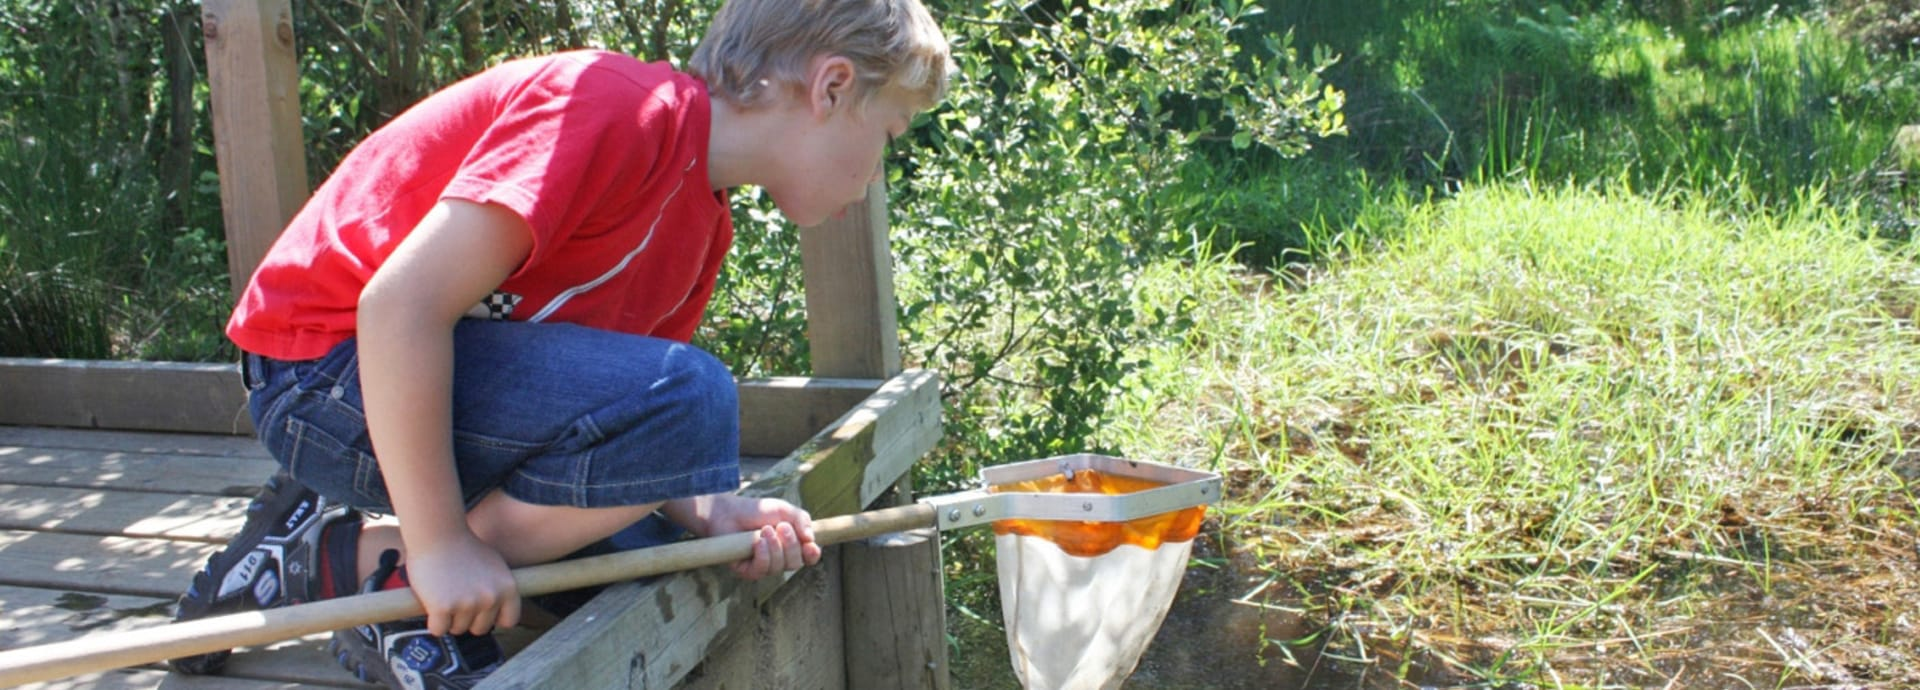 Things to do with the children outdoors this summer